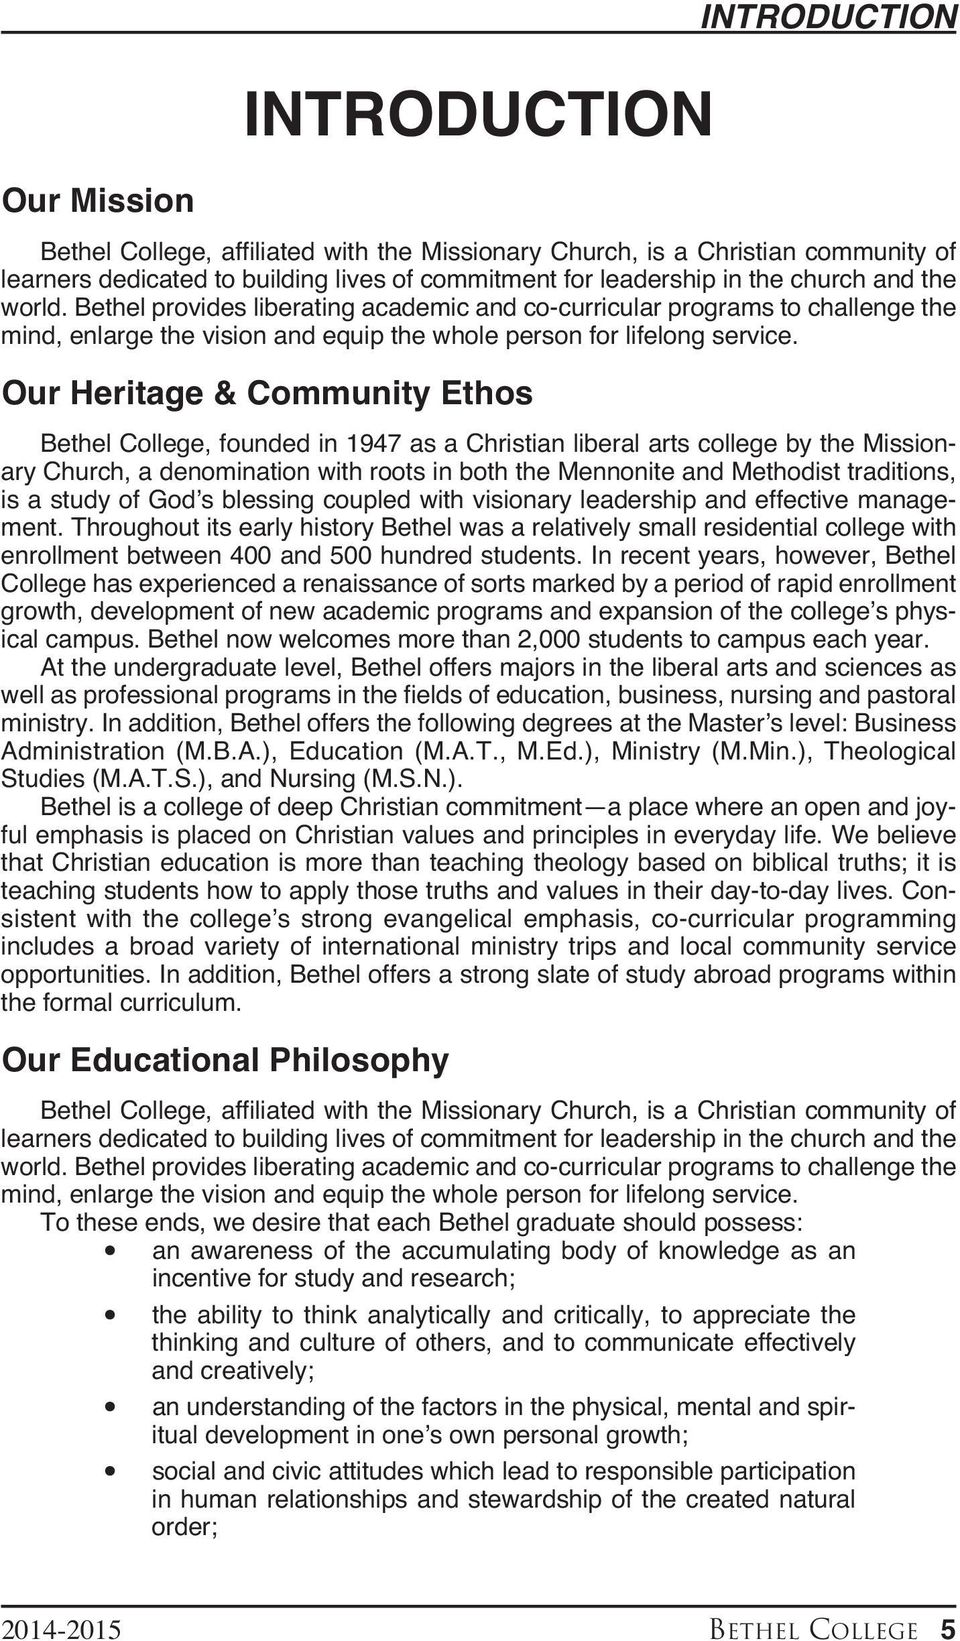 Our Heritage & Community Ethos Bethel College, founded in 1947 as a Christian liberal arts college by the Missionary Church, a denomination with roots in both the Mennonite and Methodist traditions,